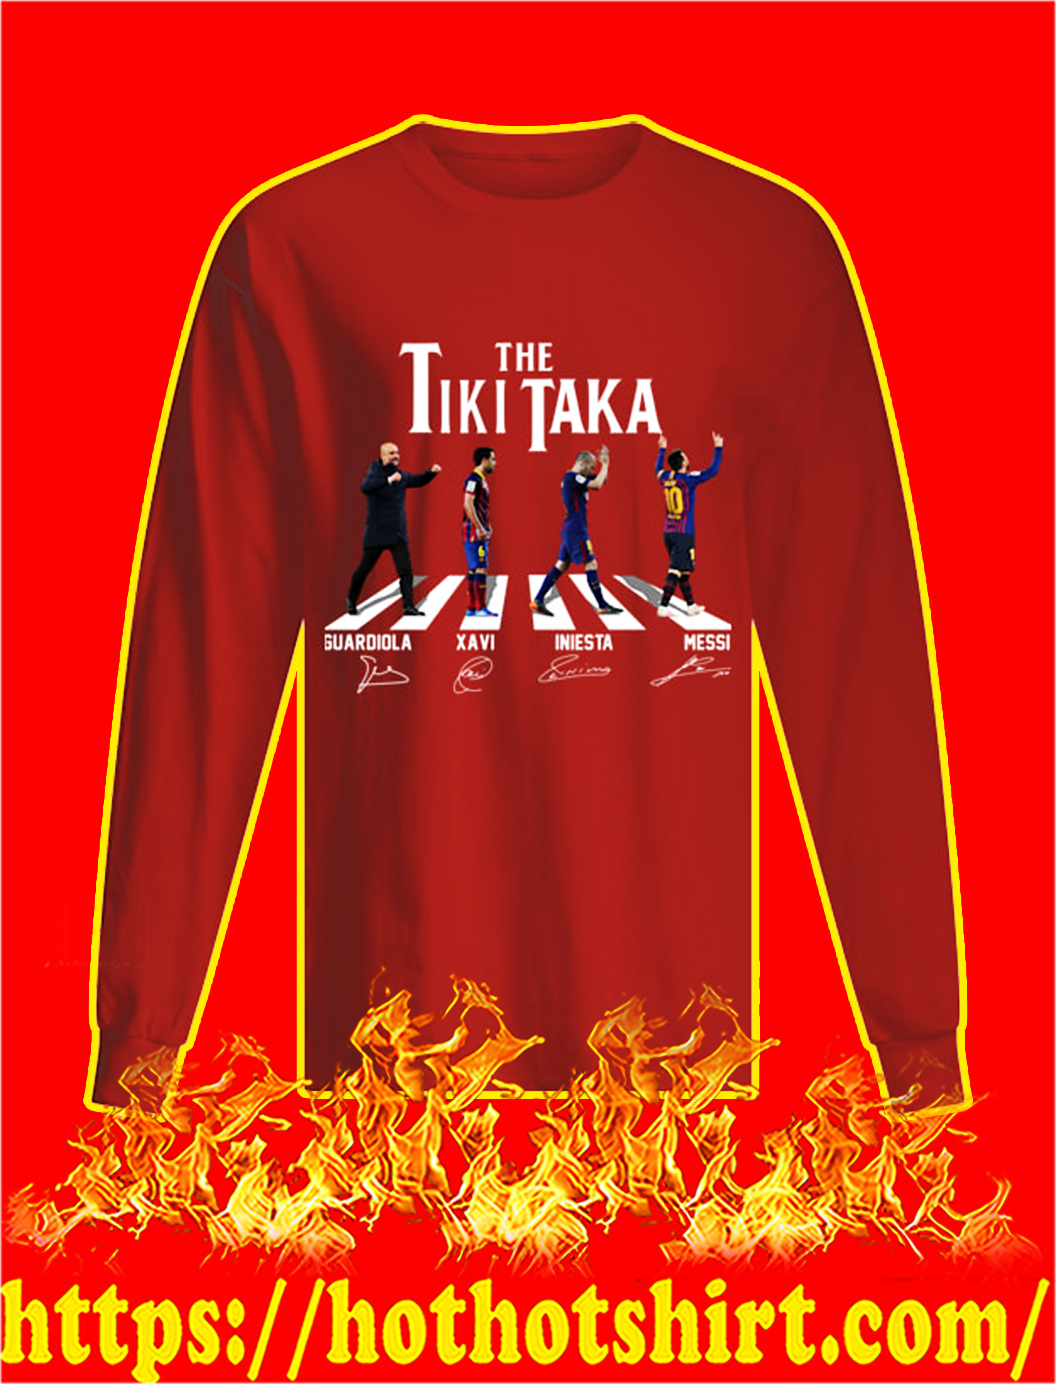 The Tiki Taka Barcelona Abbey Road Signature longsleeve tee